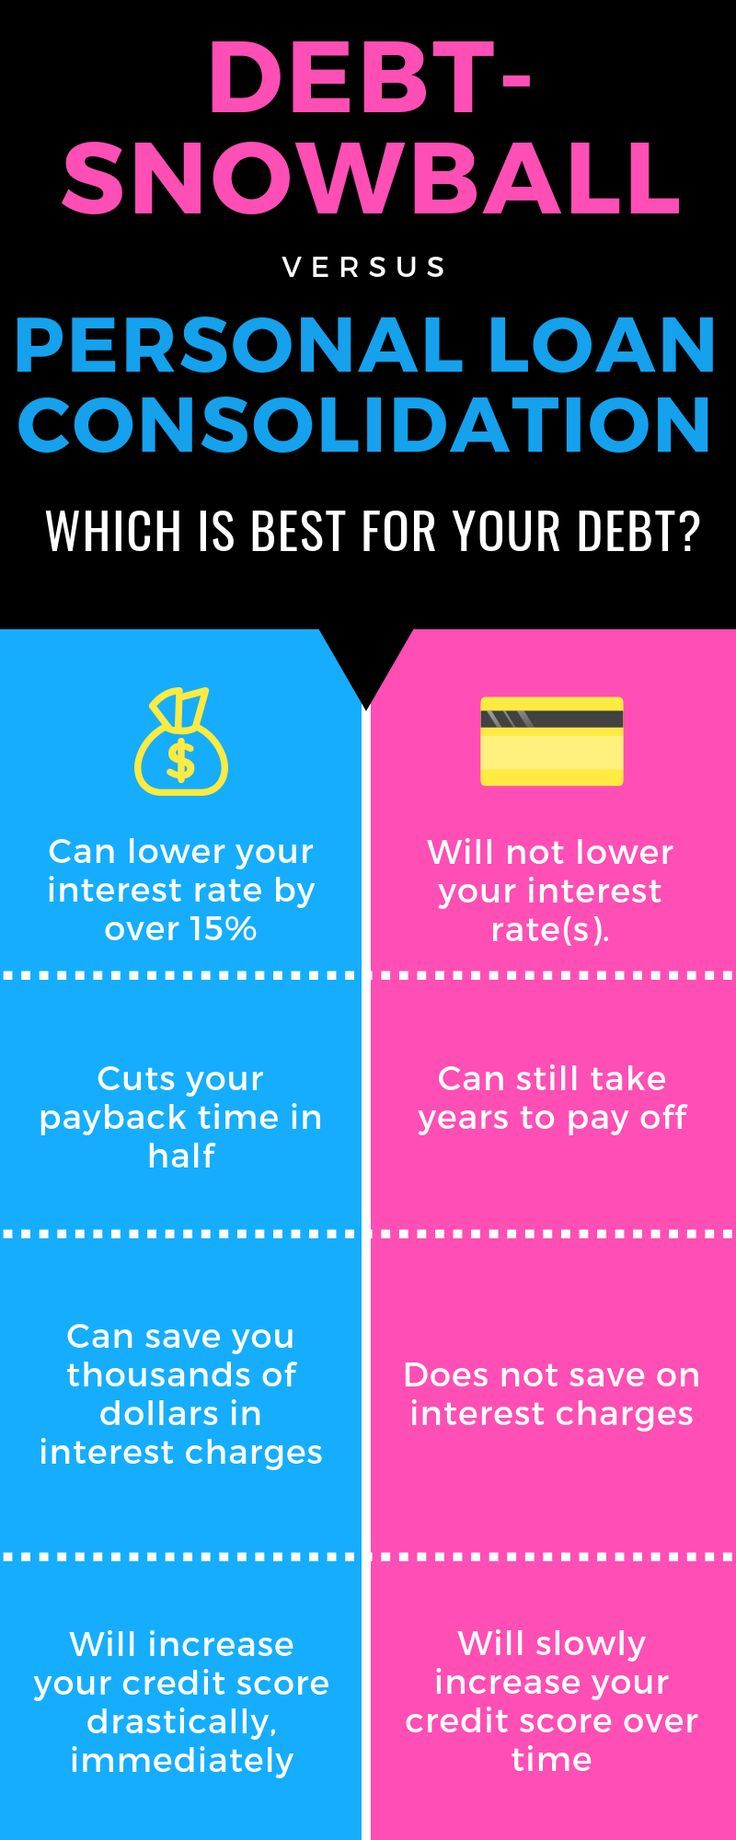 How To Pay Off Your Credit Card Debt Quickly With A Personal Loan Debt Payoff Personal Loans Money Personal Loans